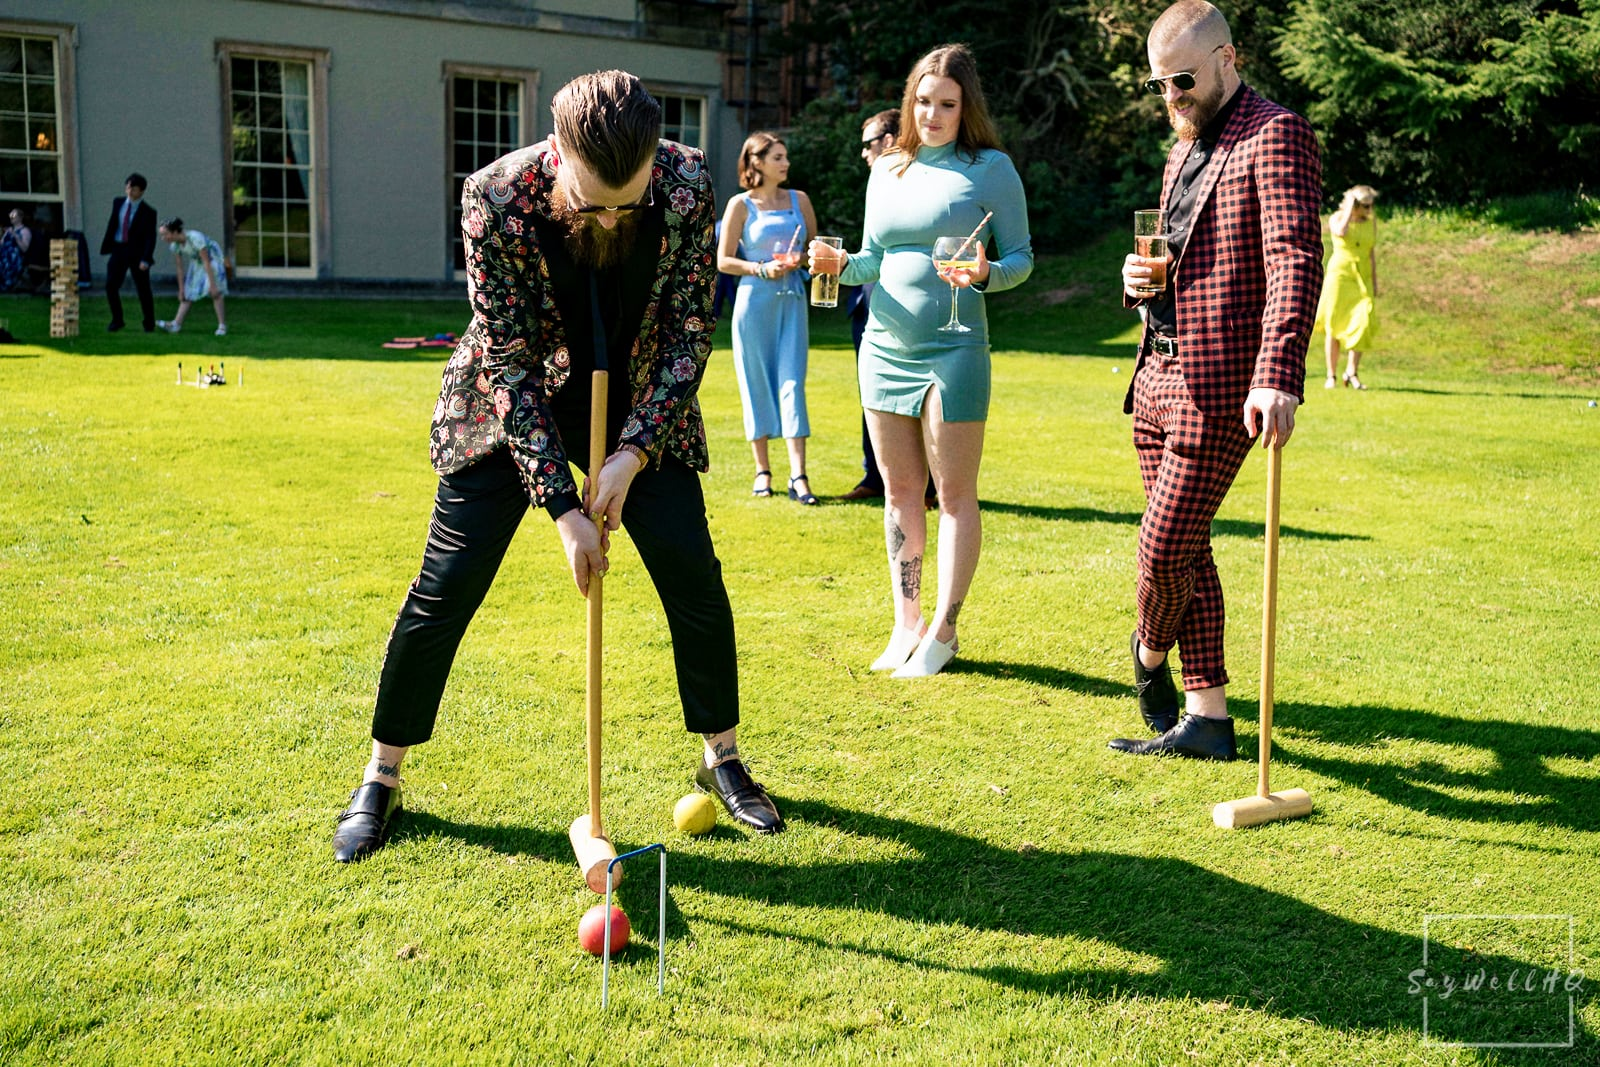 Prestwold Hall Wedding Photography - wedding guests enjoying the summer sunshine playing garden games in the grounds of Prestwold Hall